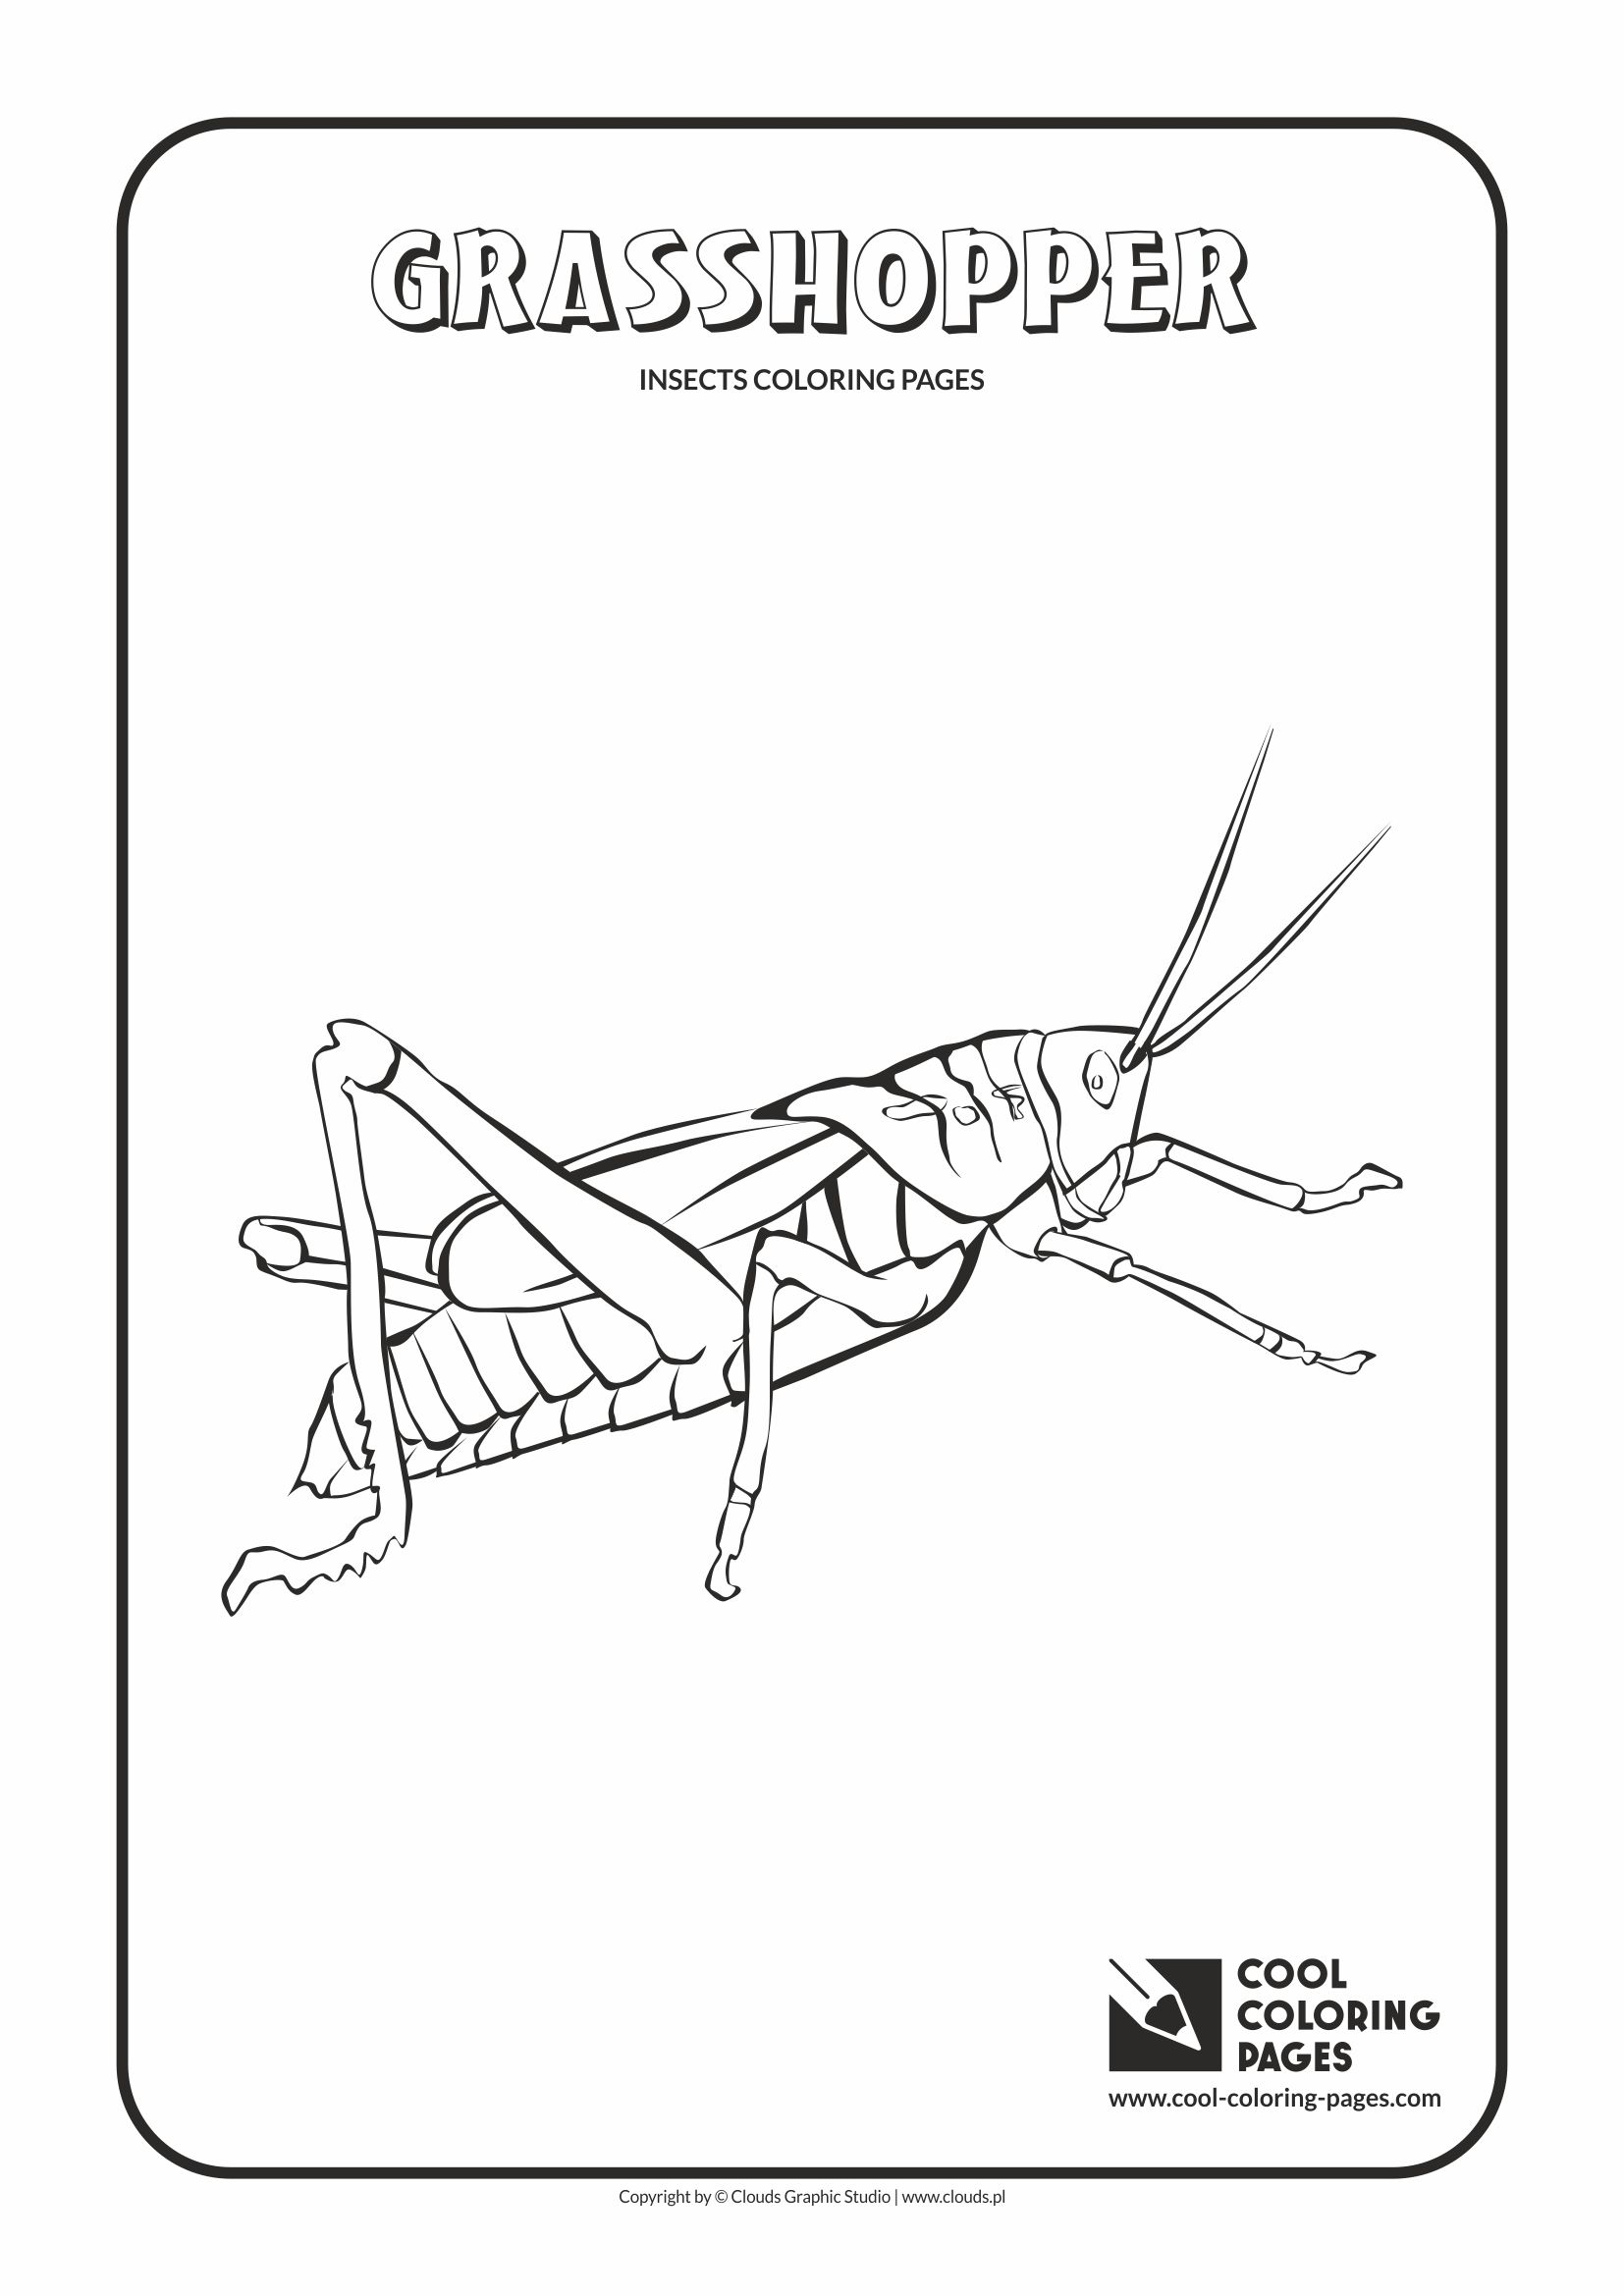 Cool Coloring Pages - Animals / Grasshopper / Coloring page with grasshopper